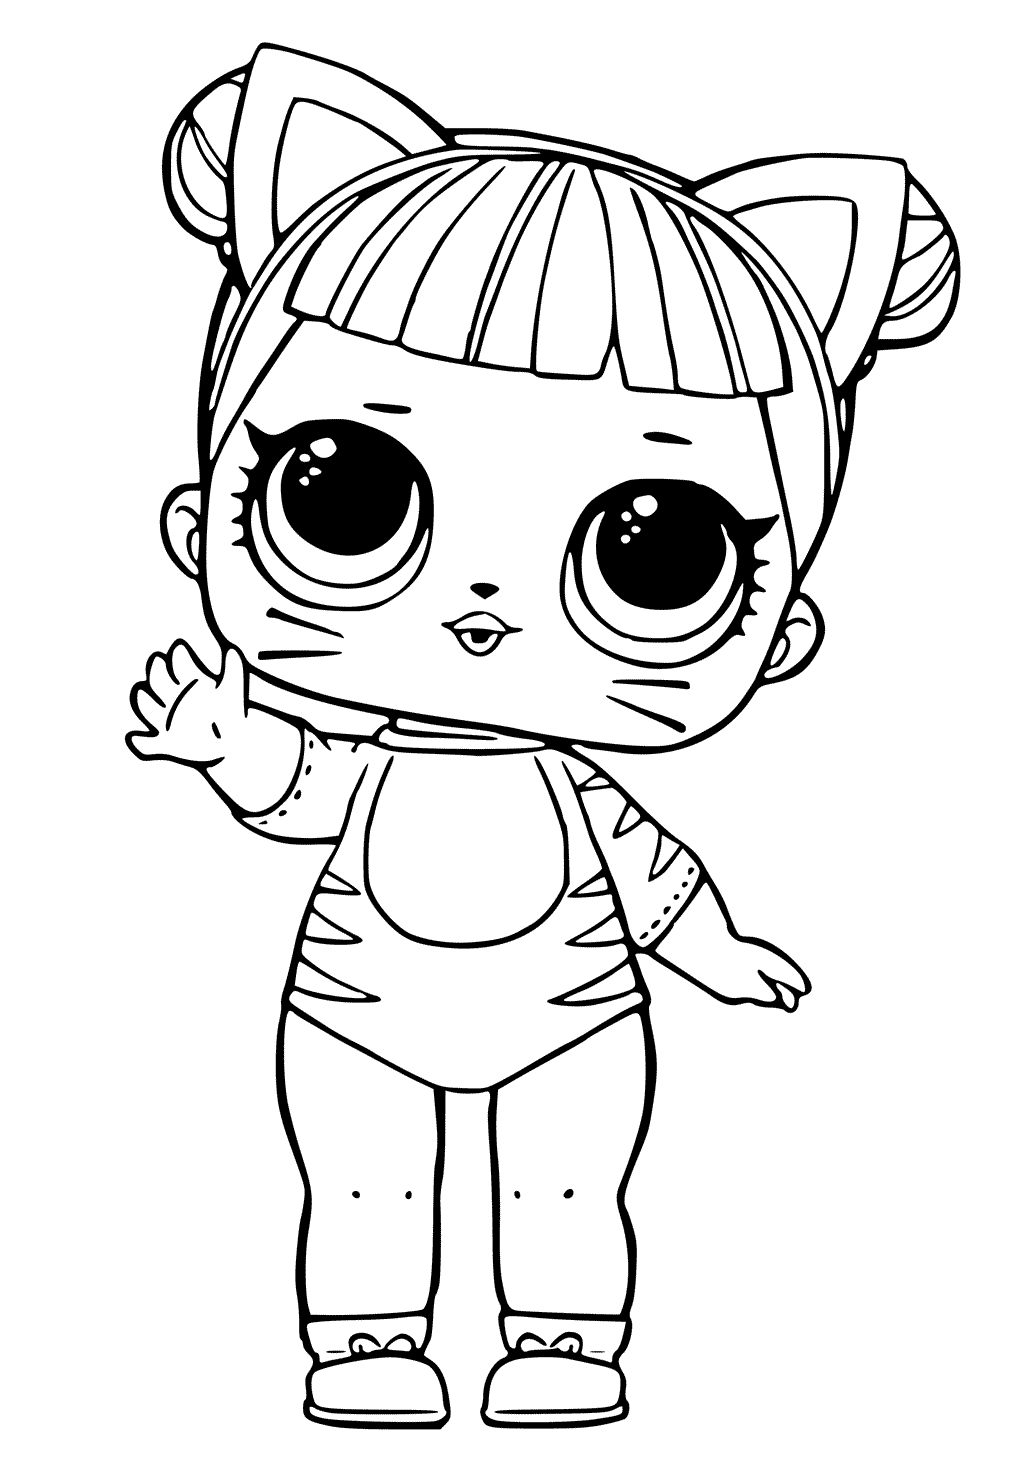 coloring template printable lol colouring pages 40 free printable lol surprise dolls coloring pages colouring printable pages lol template coloring